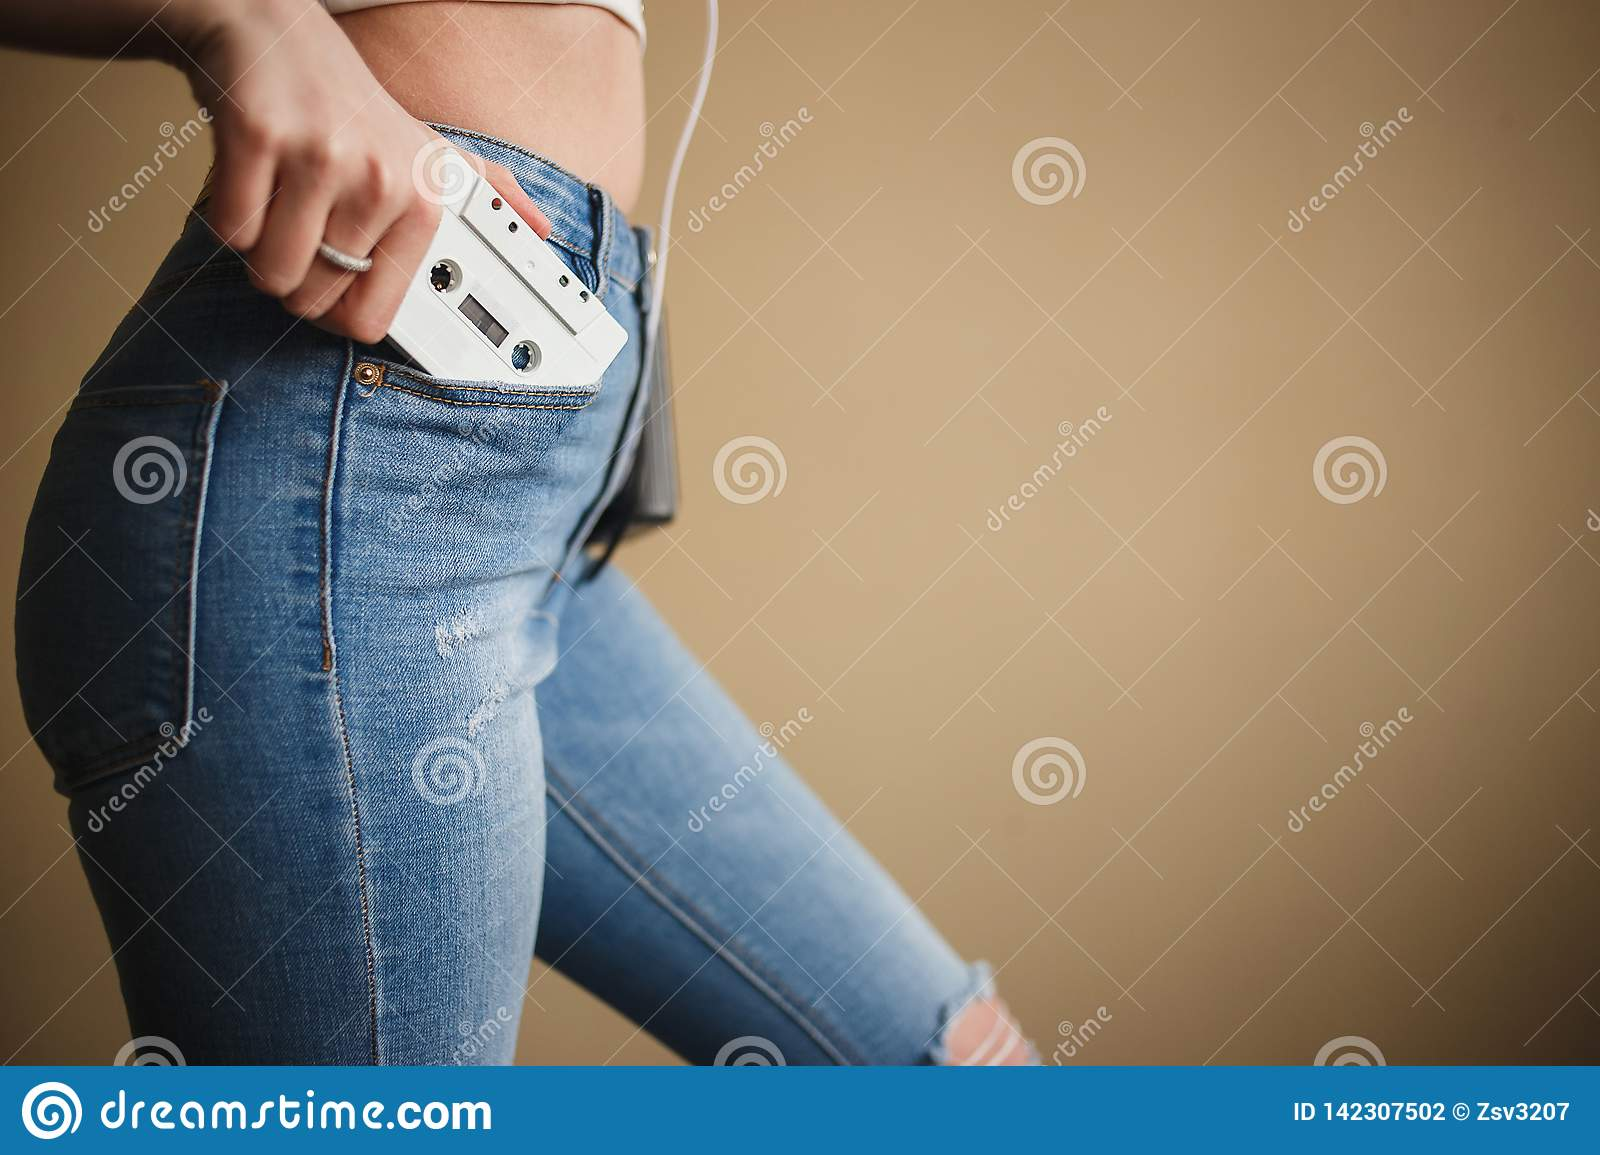 Girl in Jeans with White Audio Cassette. Close up. Concept of Hipsters, Love Retro Music, Dance Party 90s